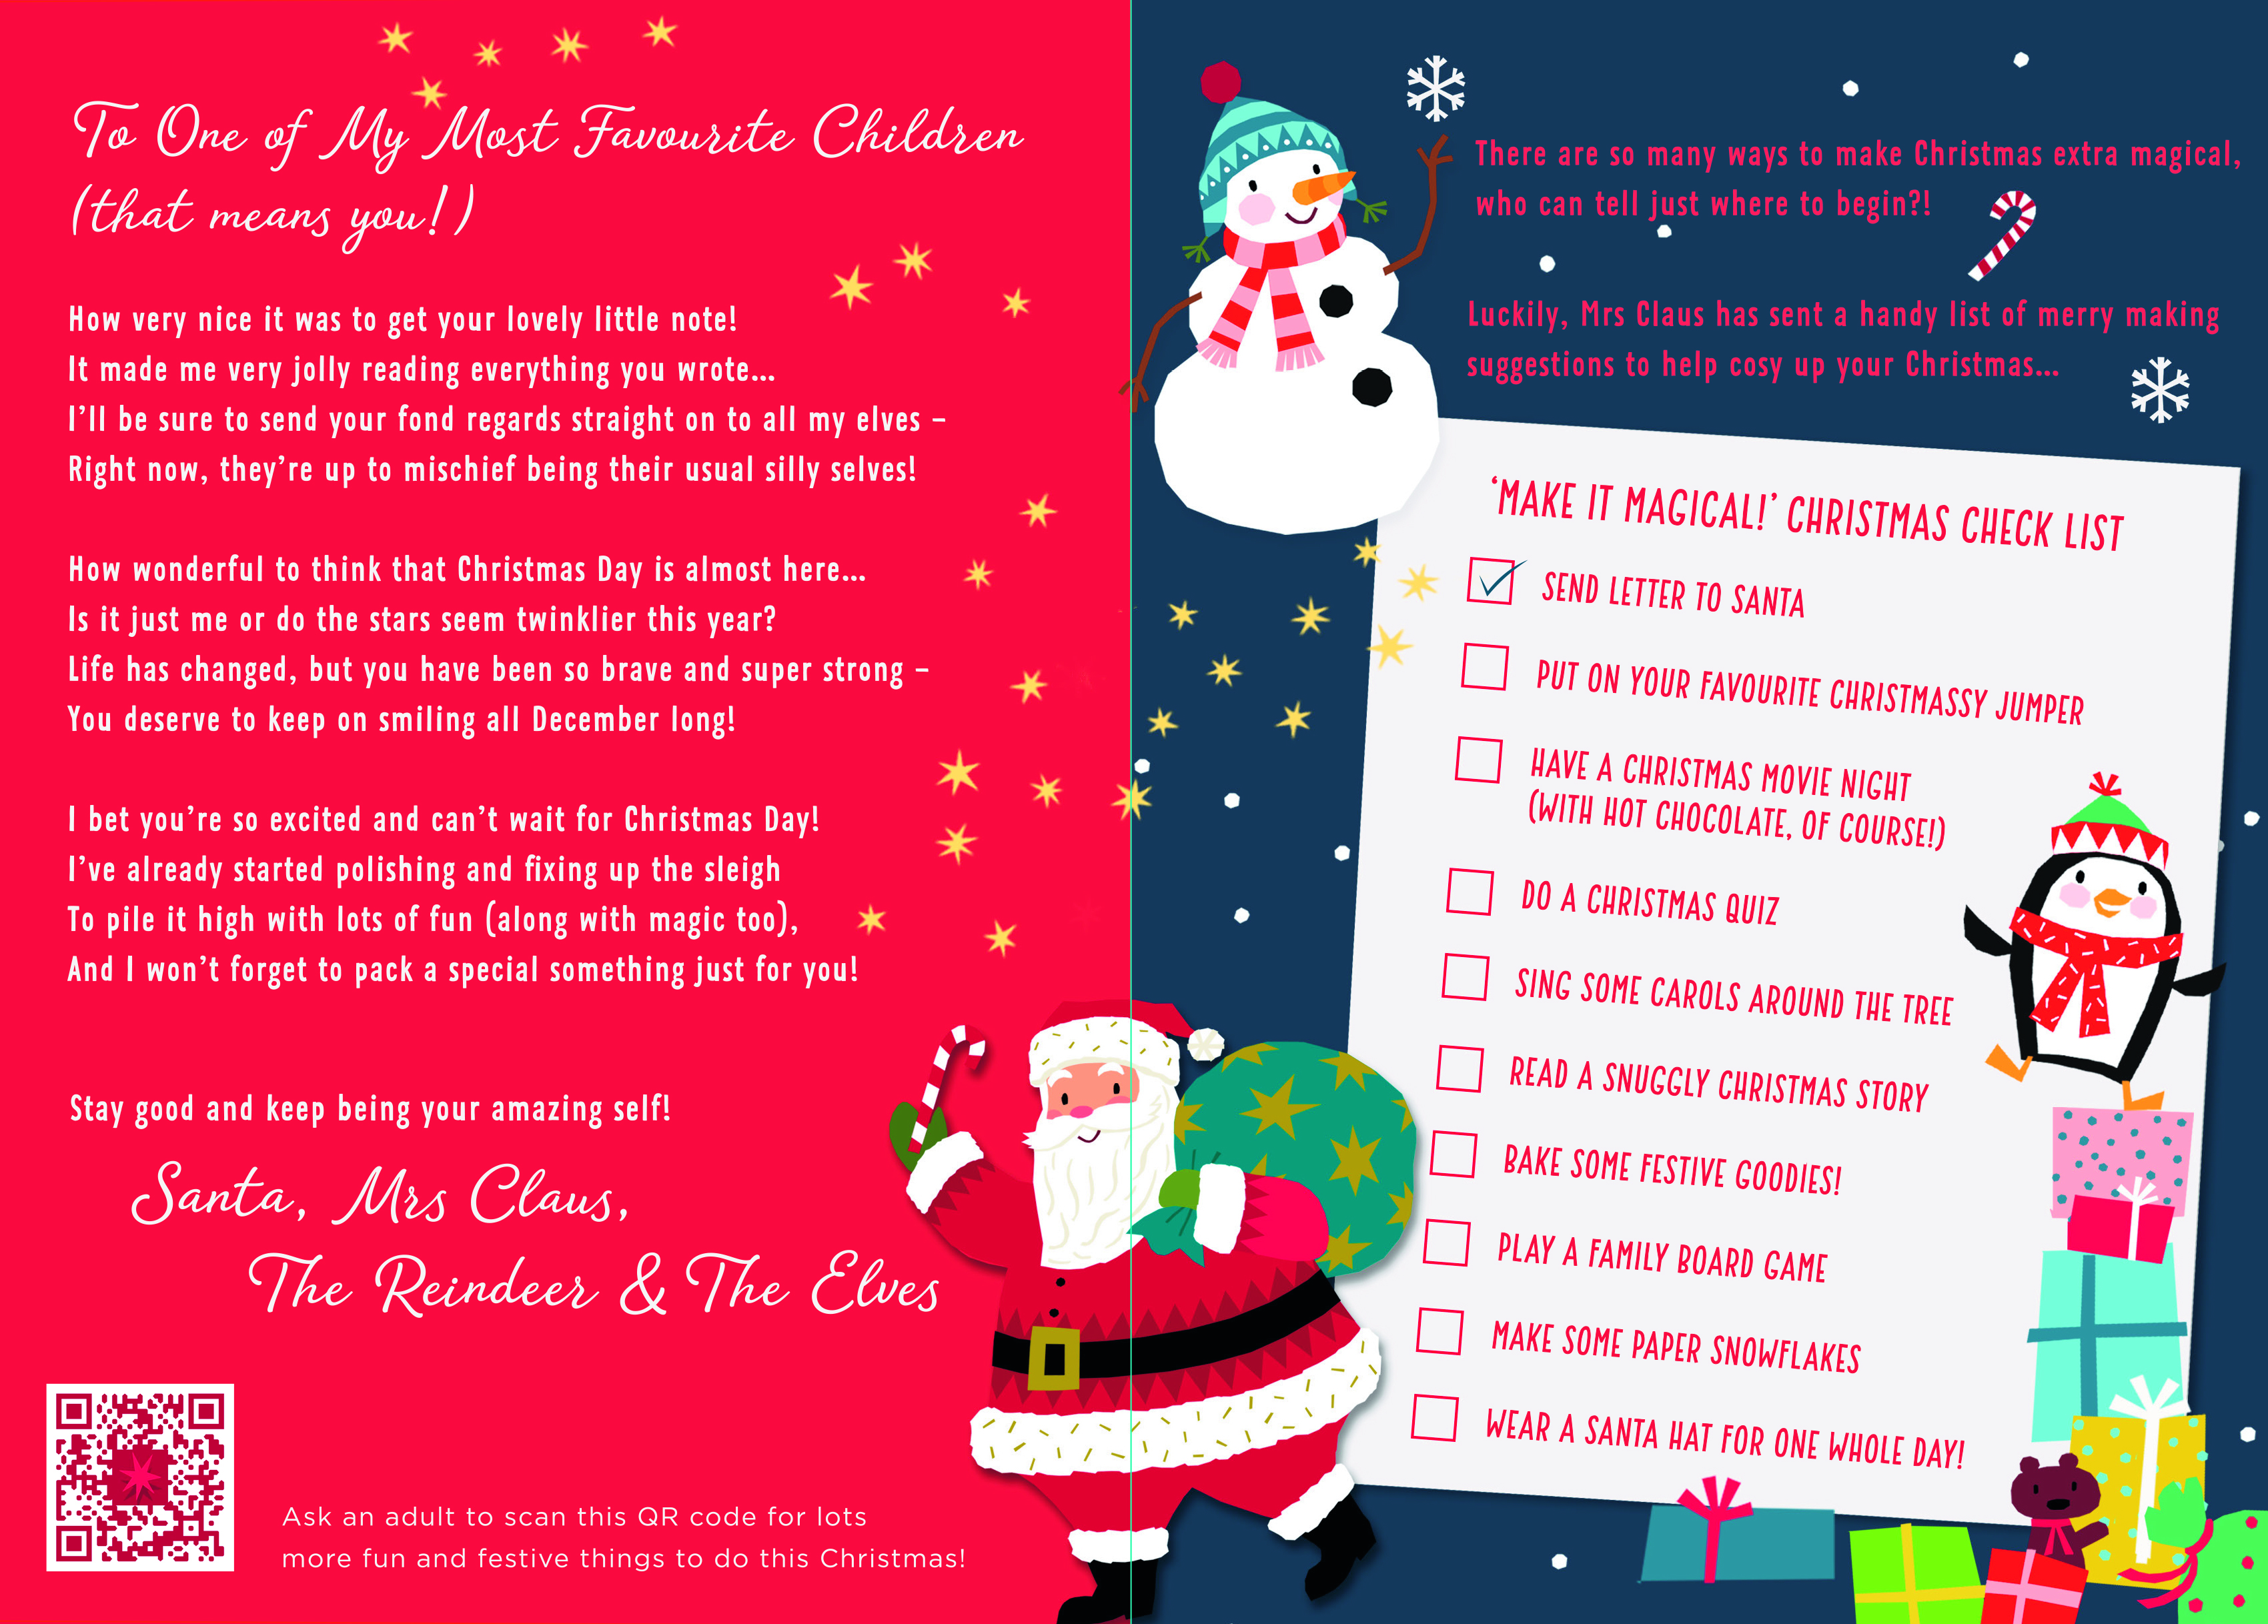 Above: Part of the promotional material to encourage children to write to Santa.